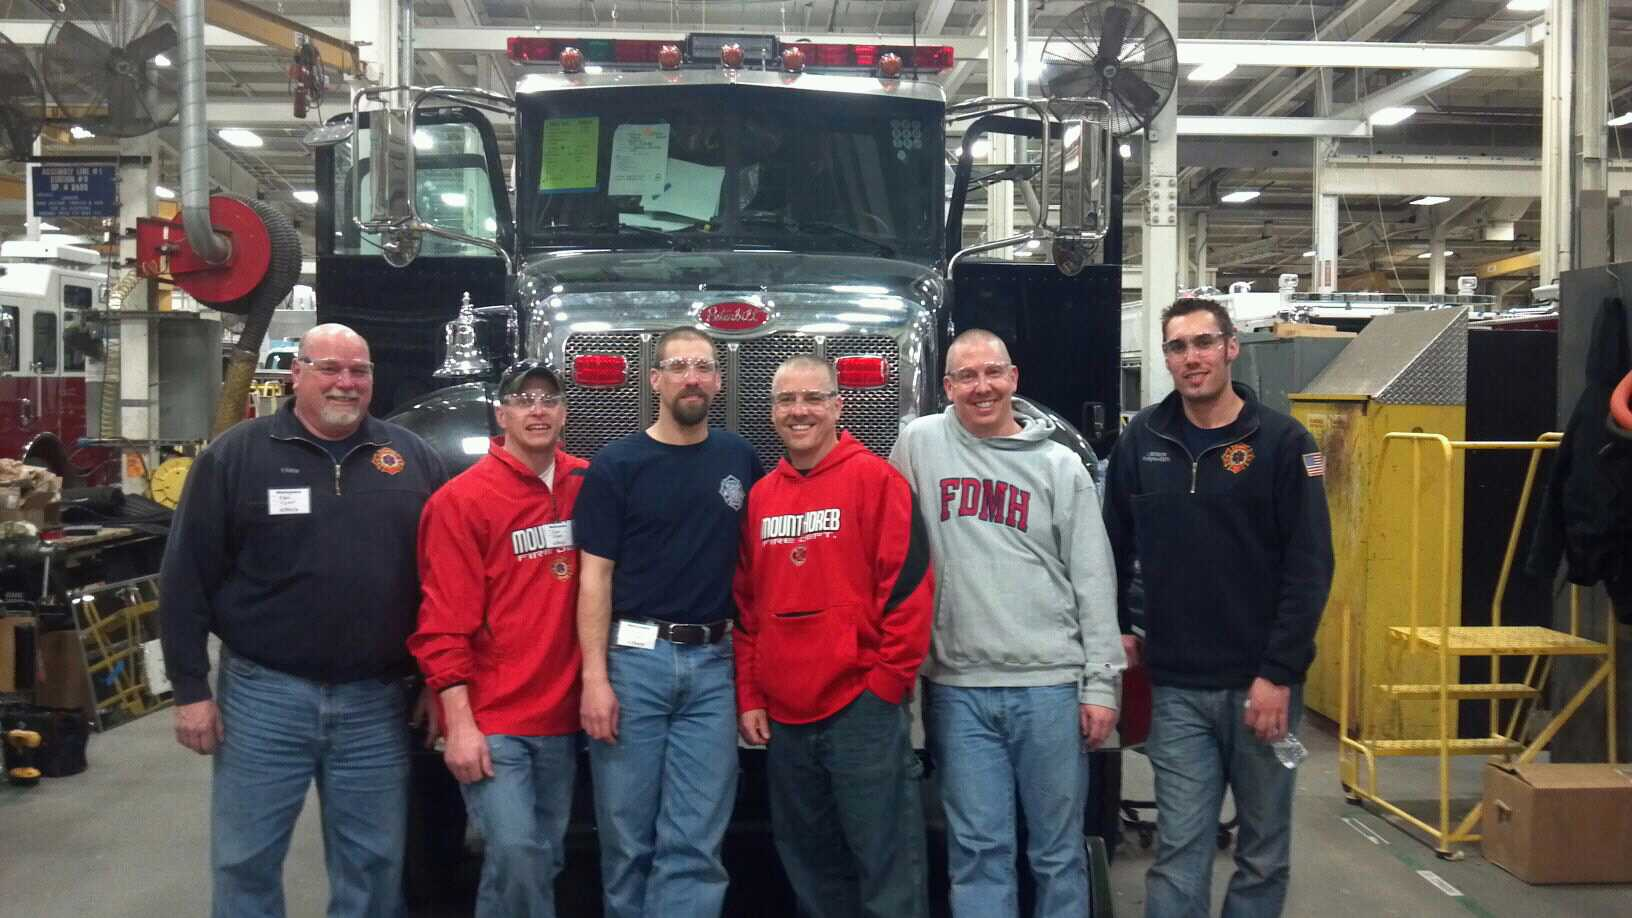 Some of the Engine 3 Committee members at Pierce